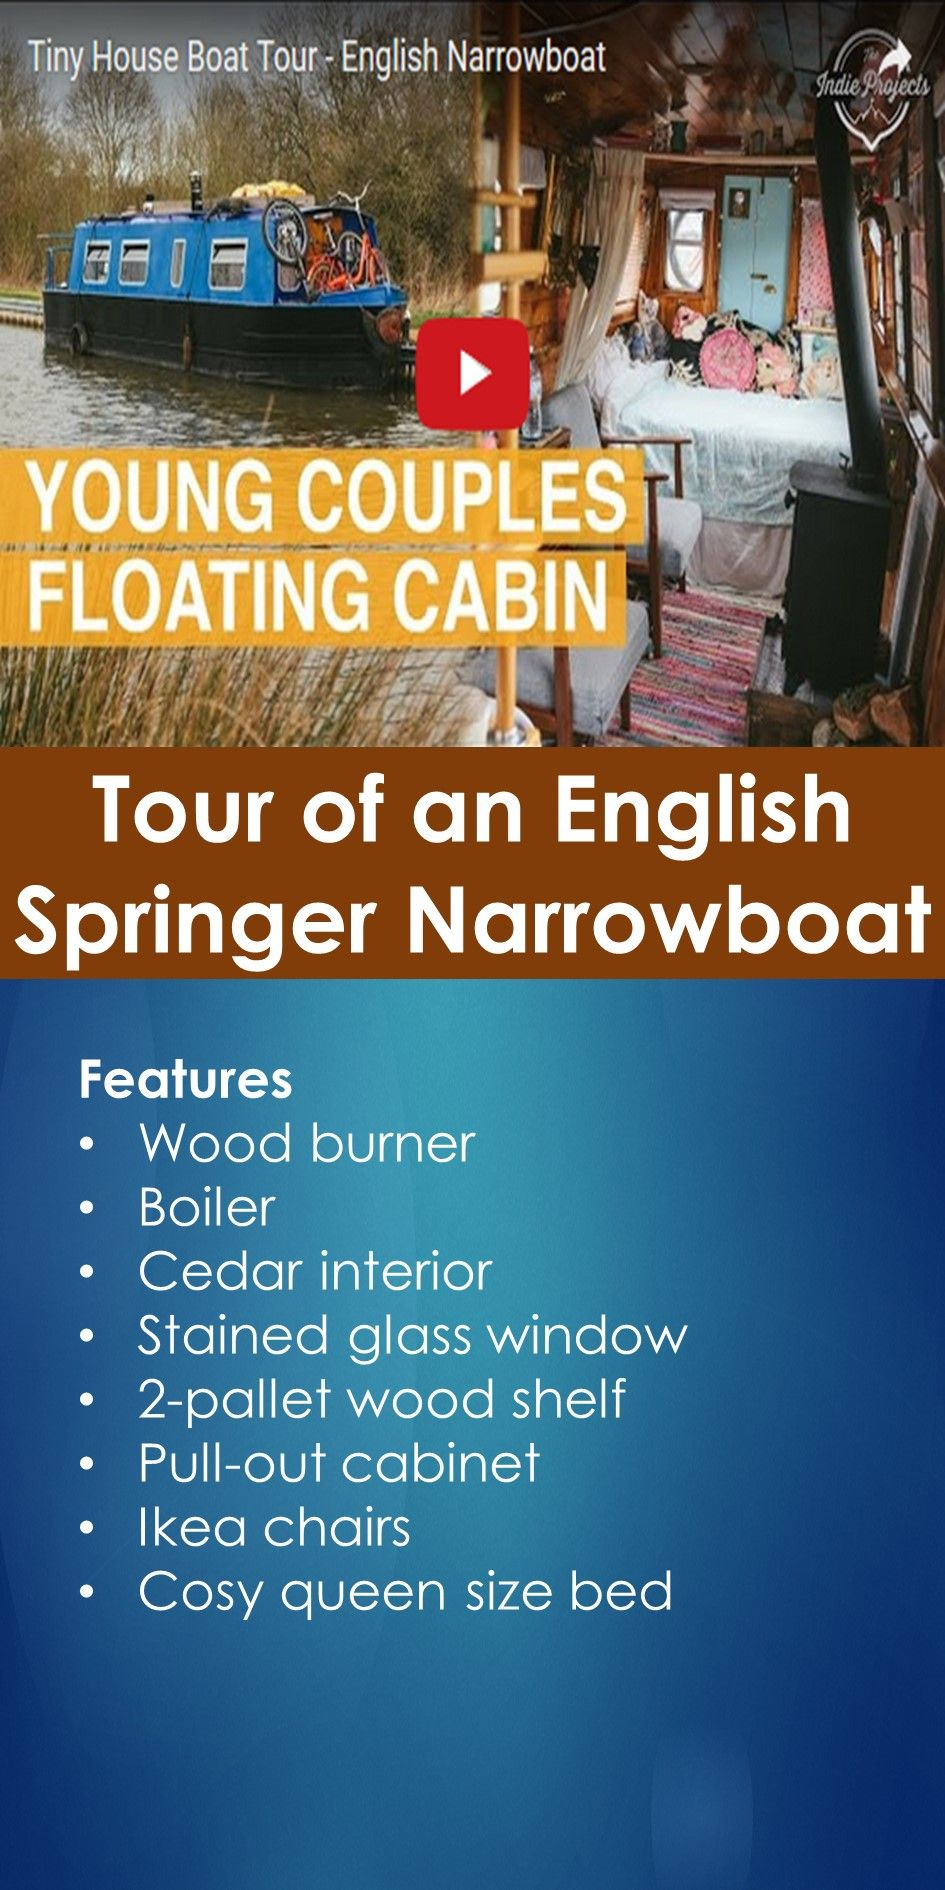 Tiny House Boat Tour: Tour of an English Springer Narrowboat | In This Guide, You Will Learn The Following; Springer Narrowboat For Sale, Springer Waterbug For Sale, Narrowboat Project For Sale, Small Narrowboat For Sale, 30 Ft Narrowboat Layout, Waterbug Boat For Sale, Little Narrowboats, Small Narrow Boats, Etc.